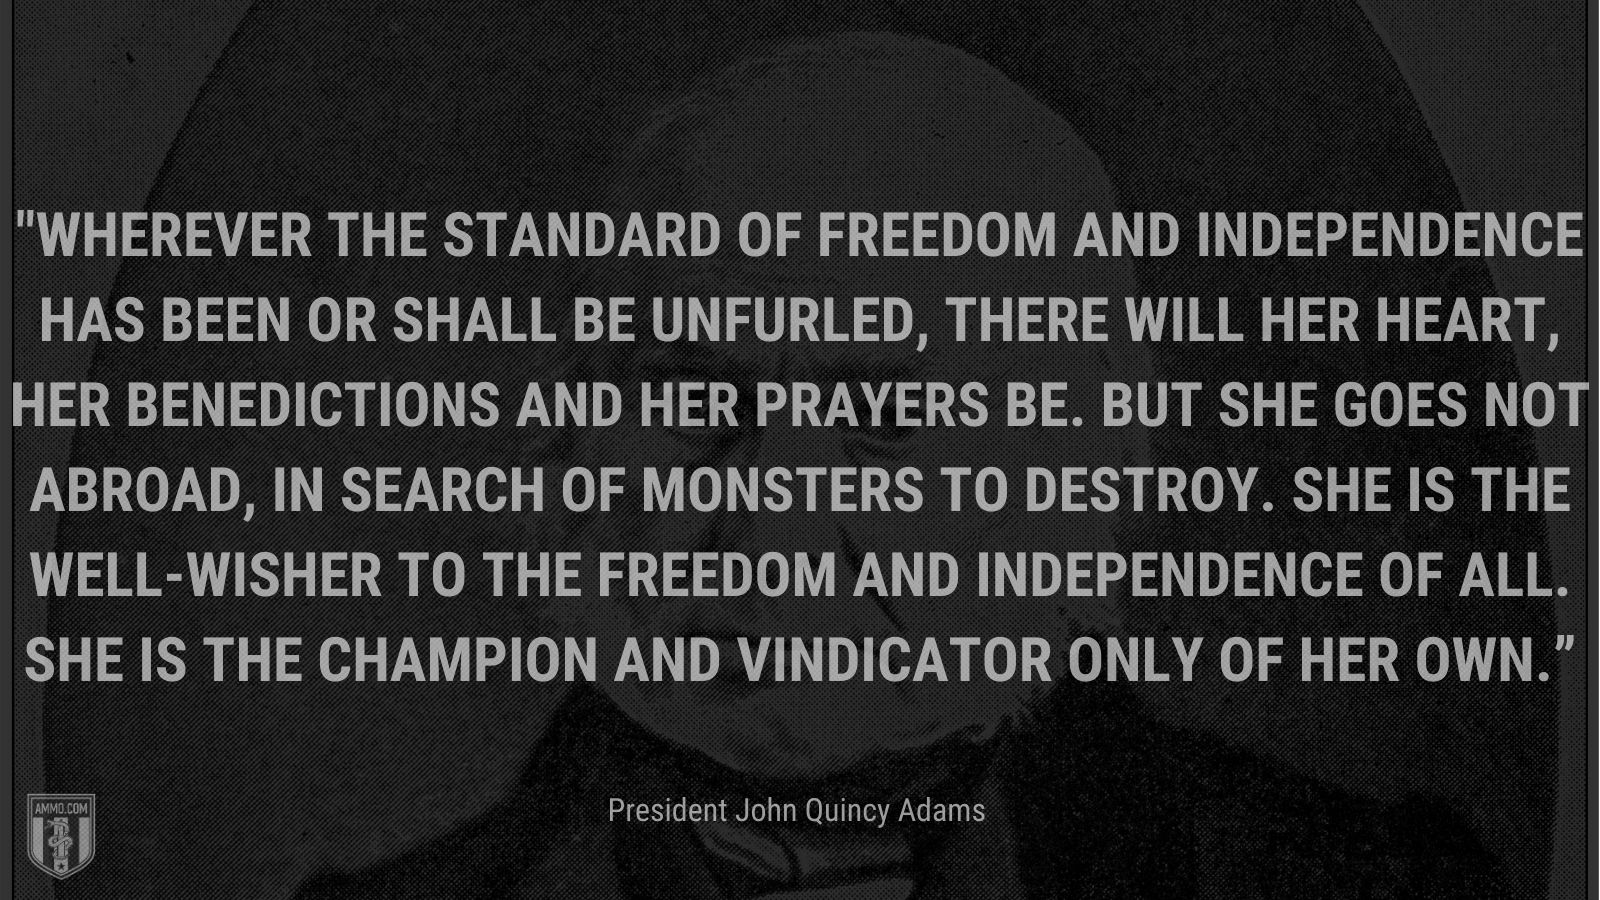 """""""Wherever the standard of freedom and Independence has been or shall be unfurled, there will her heart, her benedictions and her prayers be. But she goes not abroad, in search of monsters to destroy. She is the well-wisher to the freedom and independence of all. She is the champion and vindicator only of her own."""" - President John Quincy Adams"""